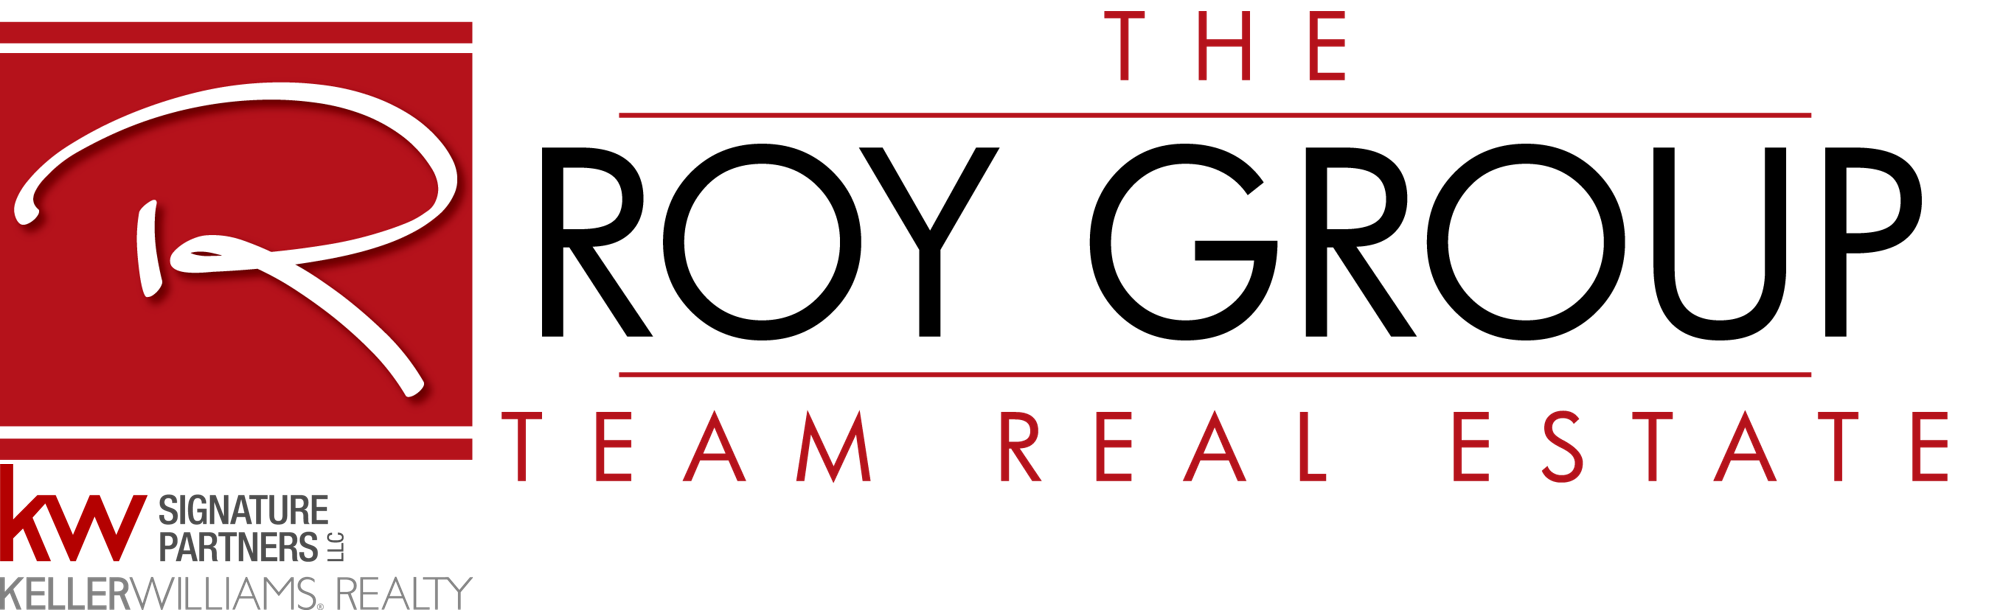 The Roy Group - Team Real Estate logo